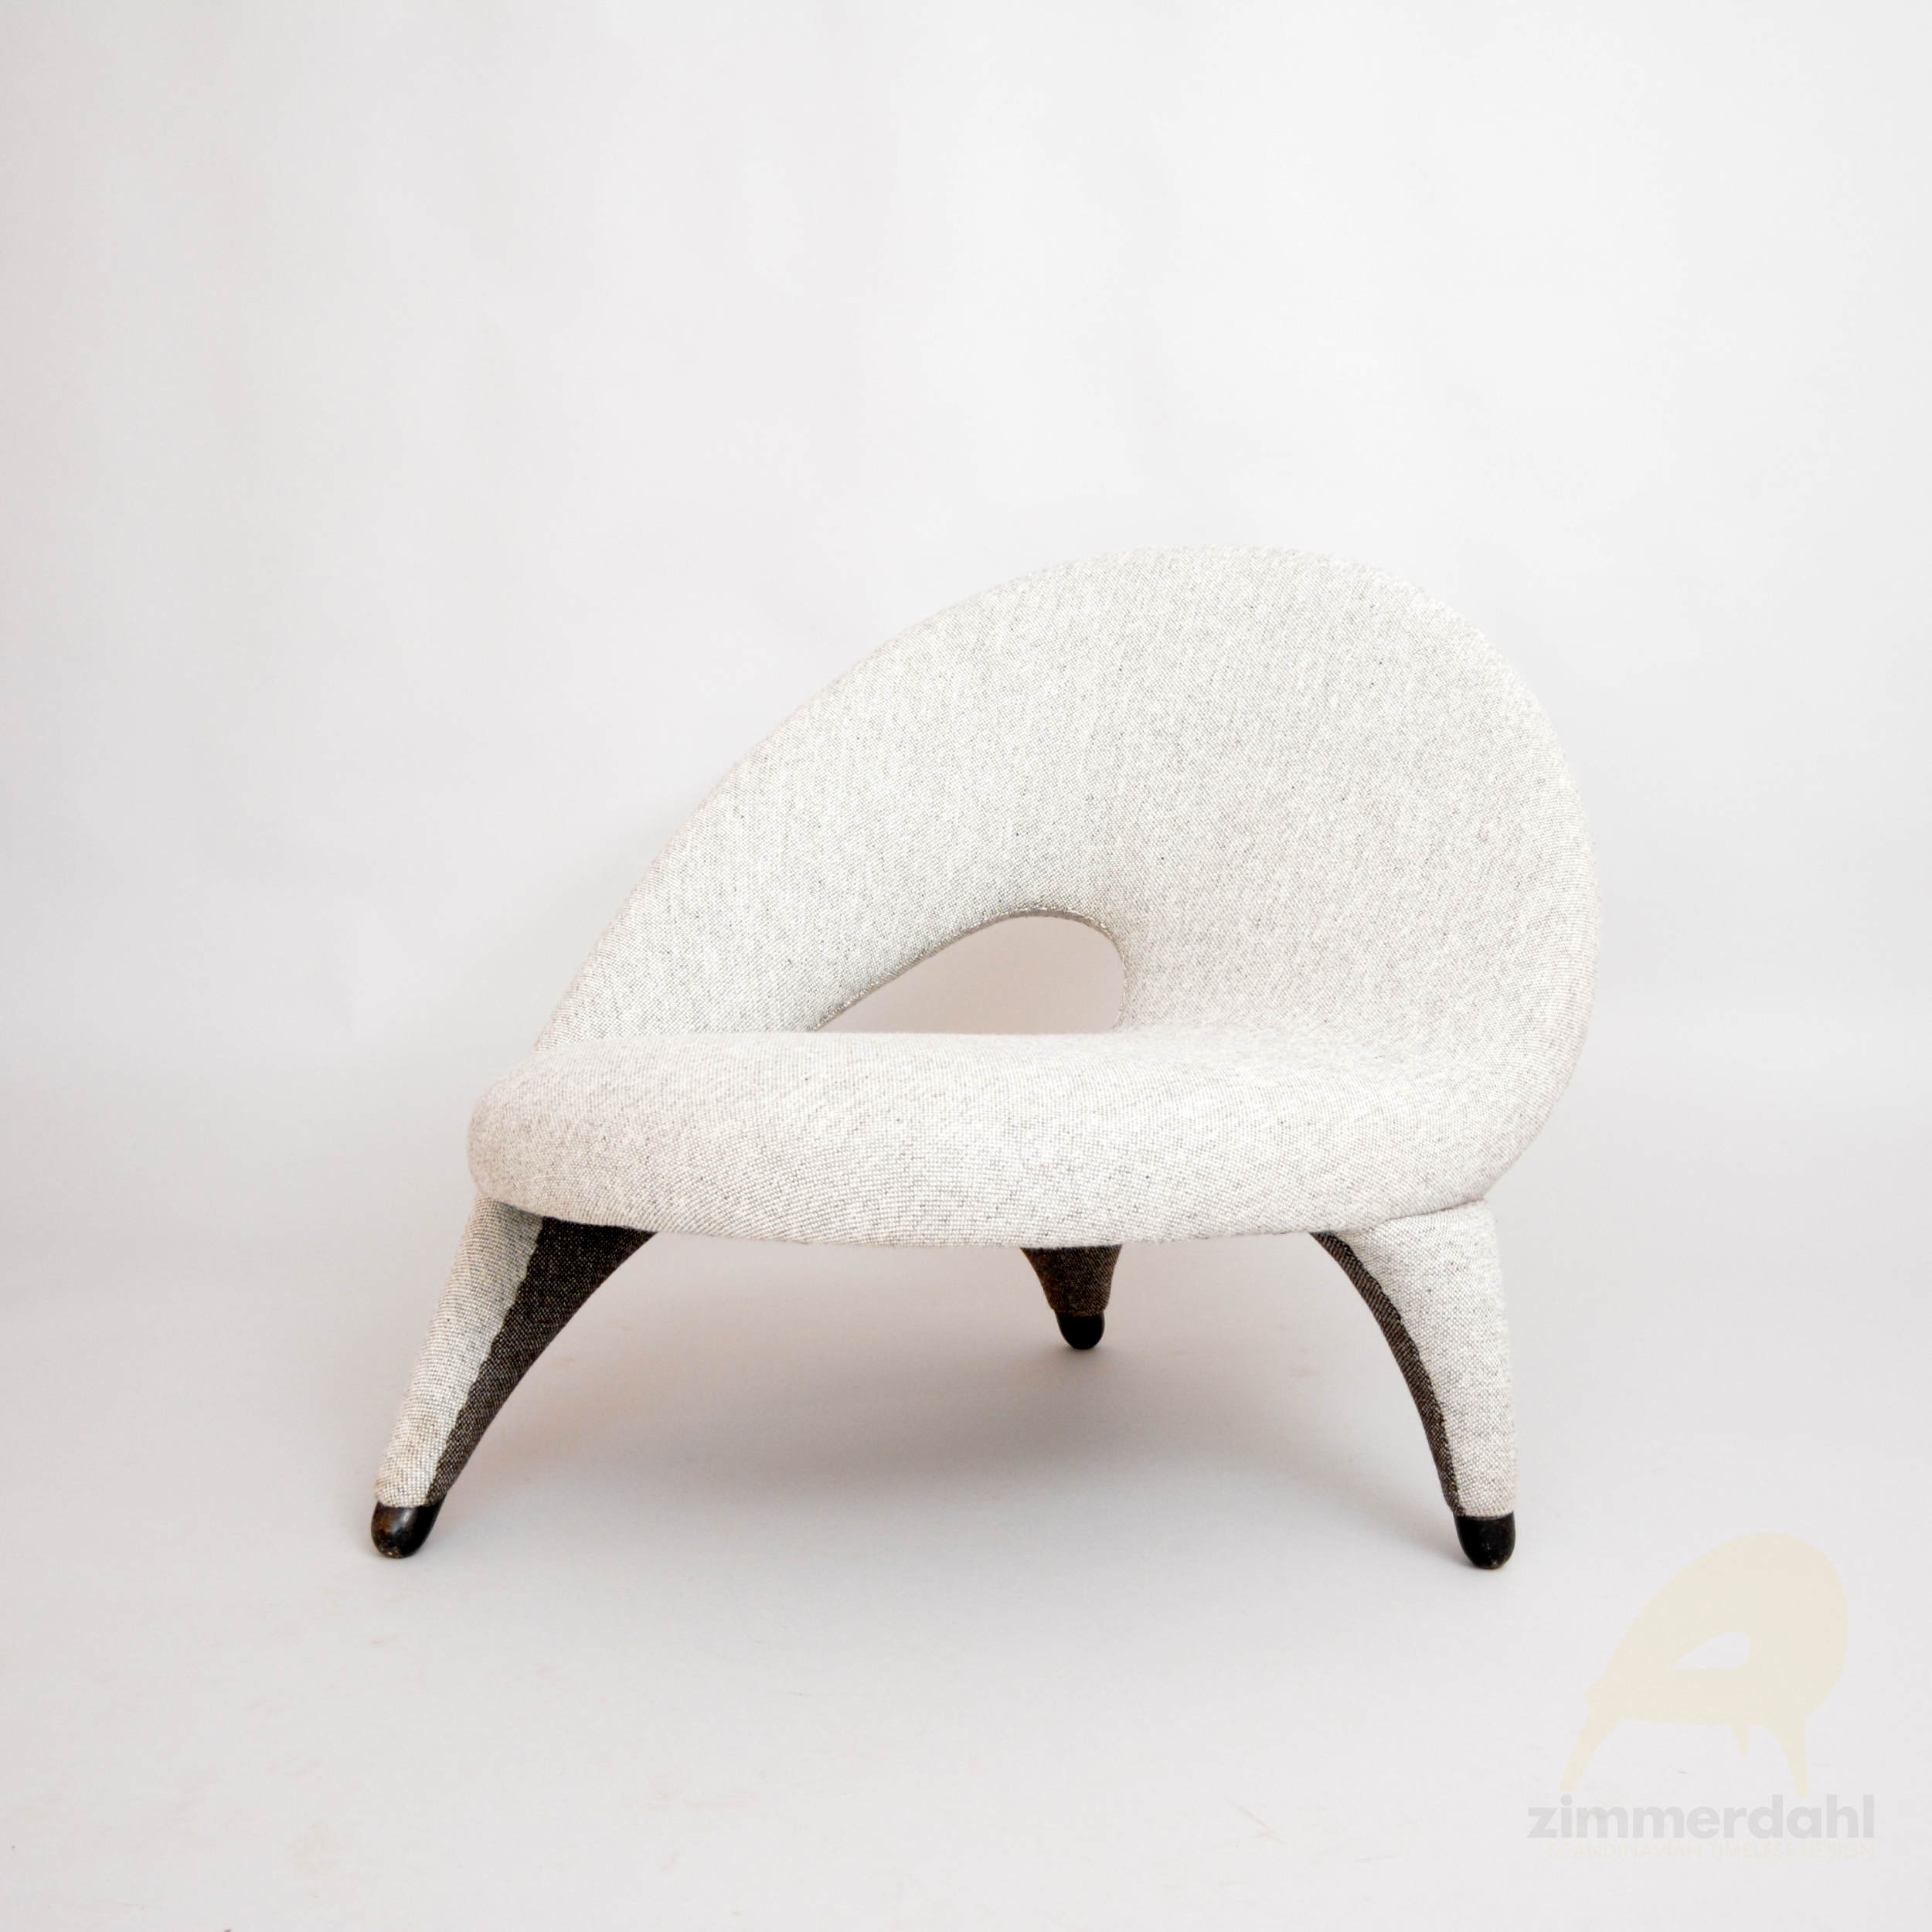 Scandinavian Chair Arabesk Lounge Chair By Folke Jansson Sweden